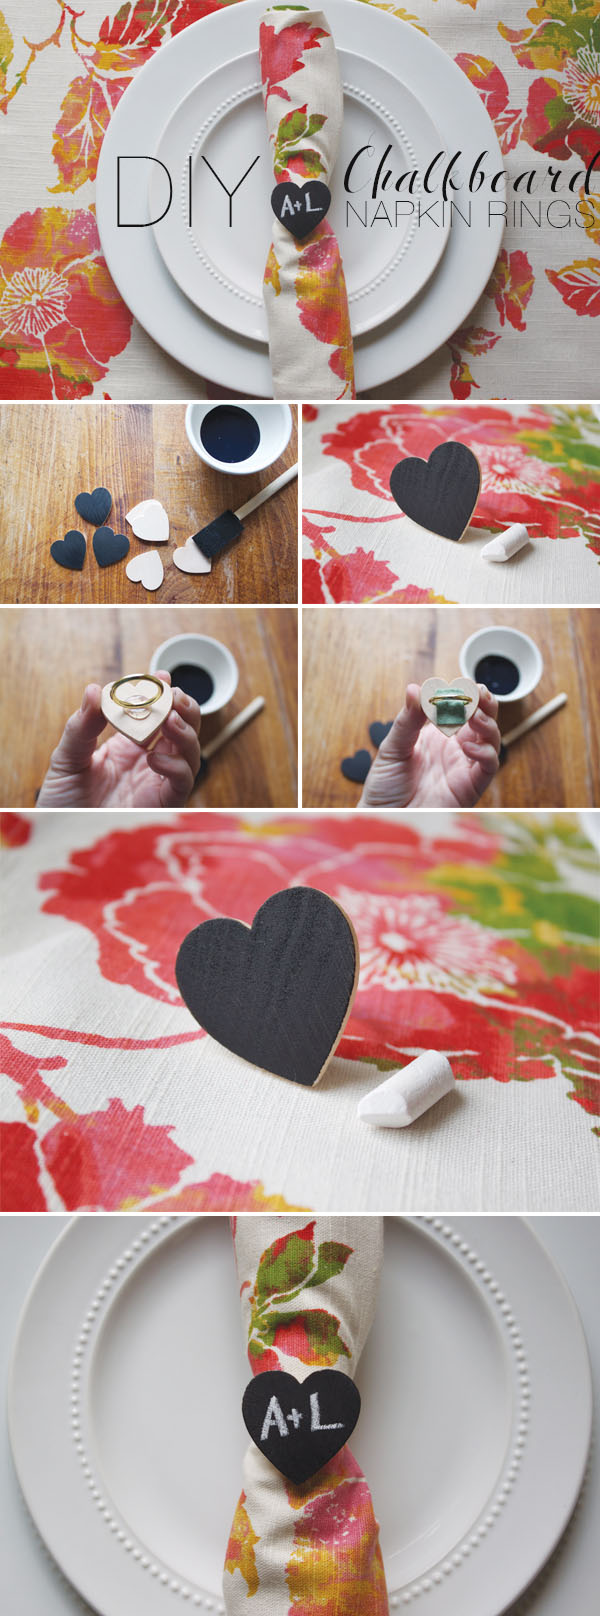 chalkboard napkin rings for wedding place setting